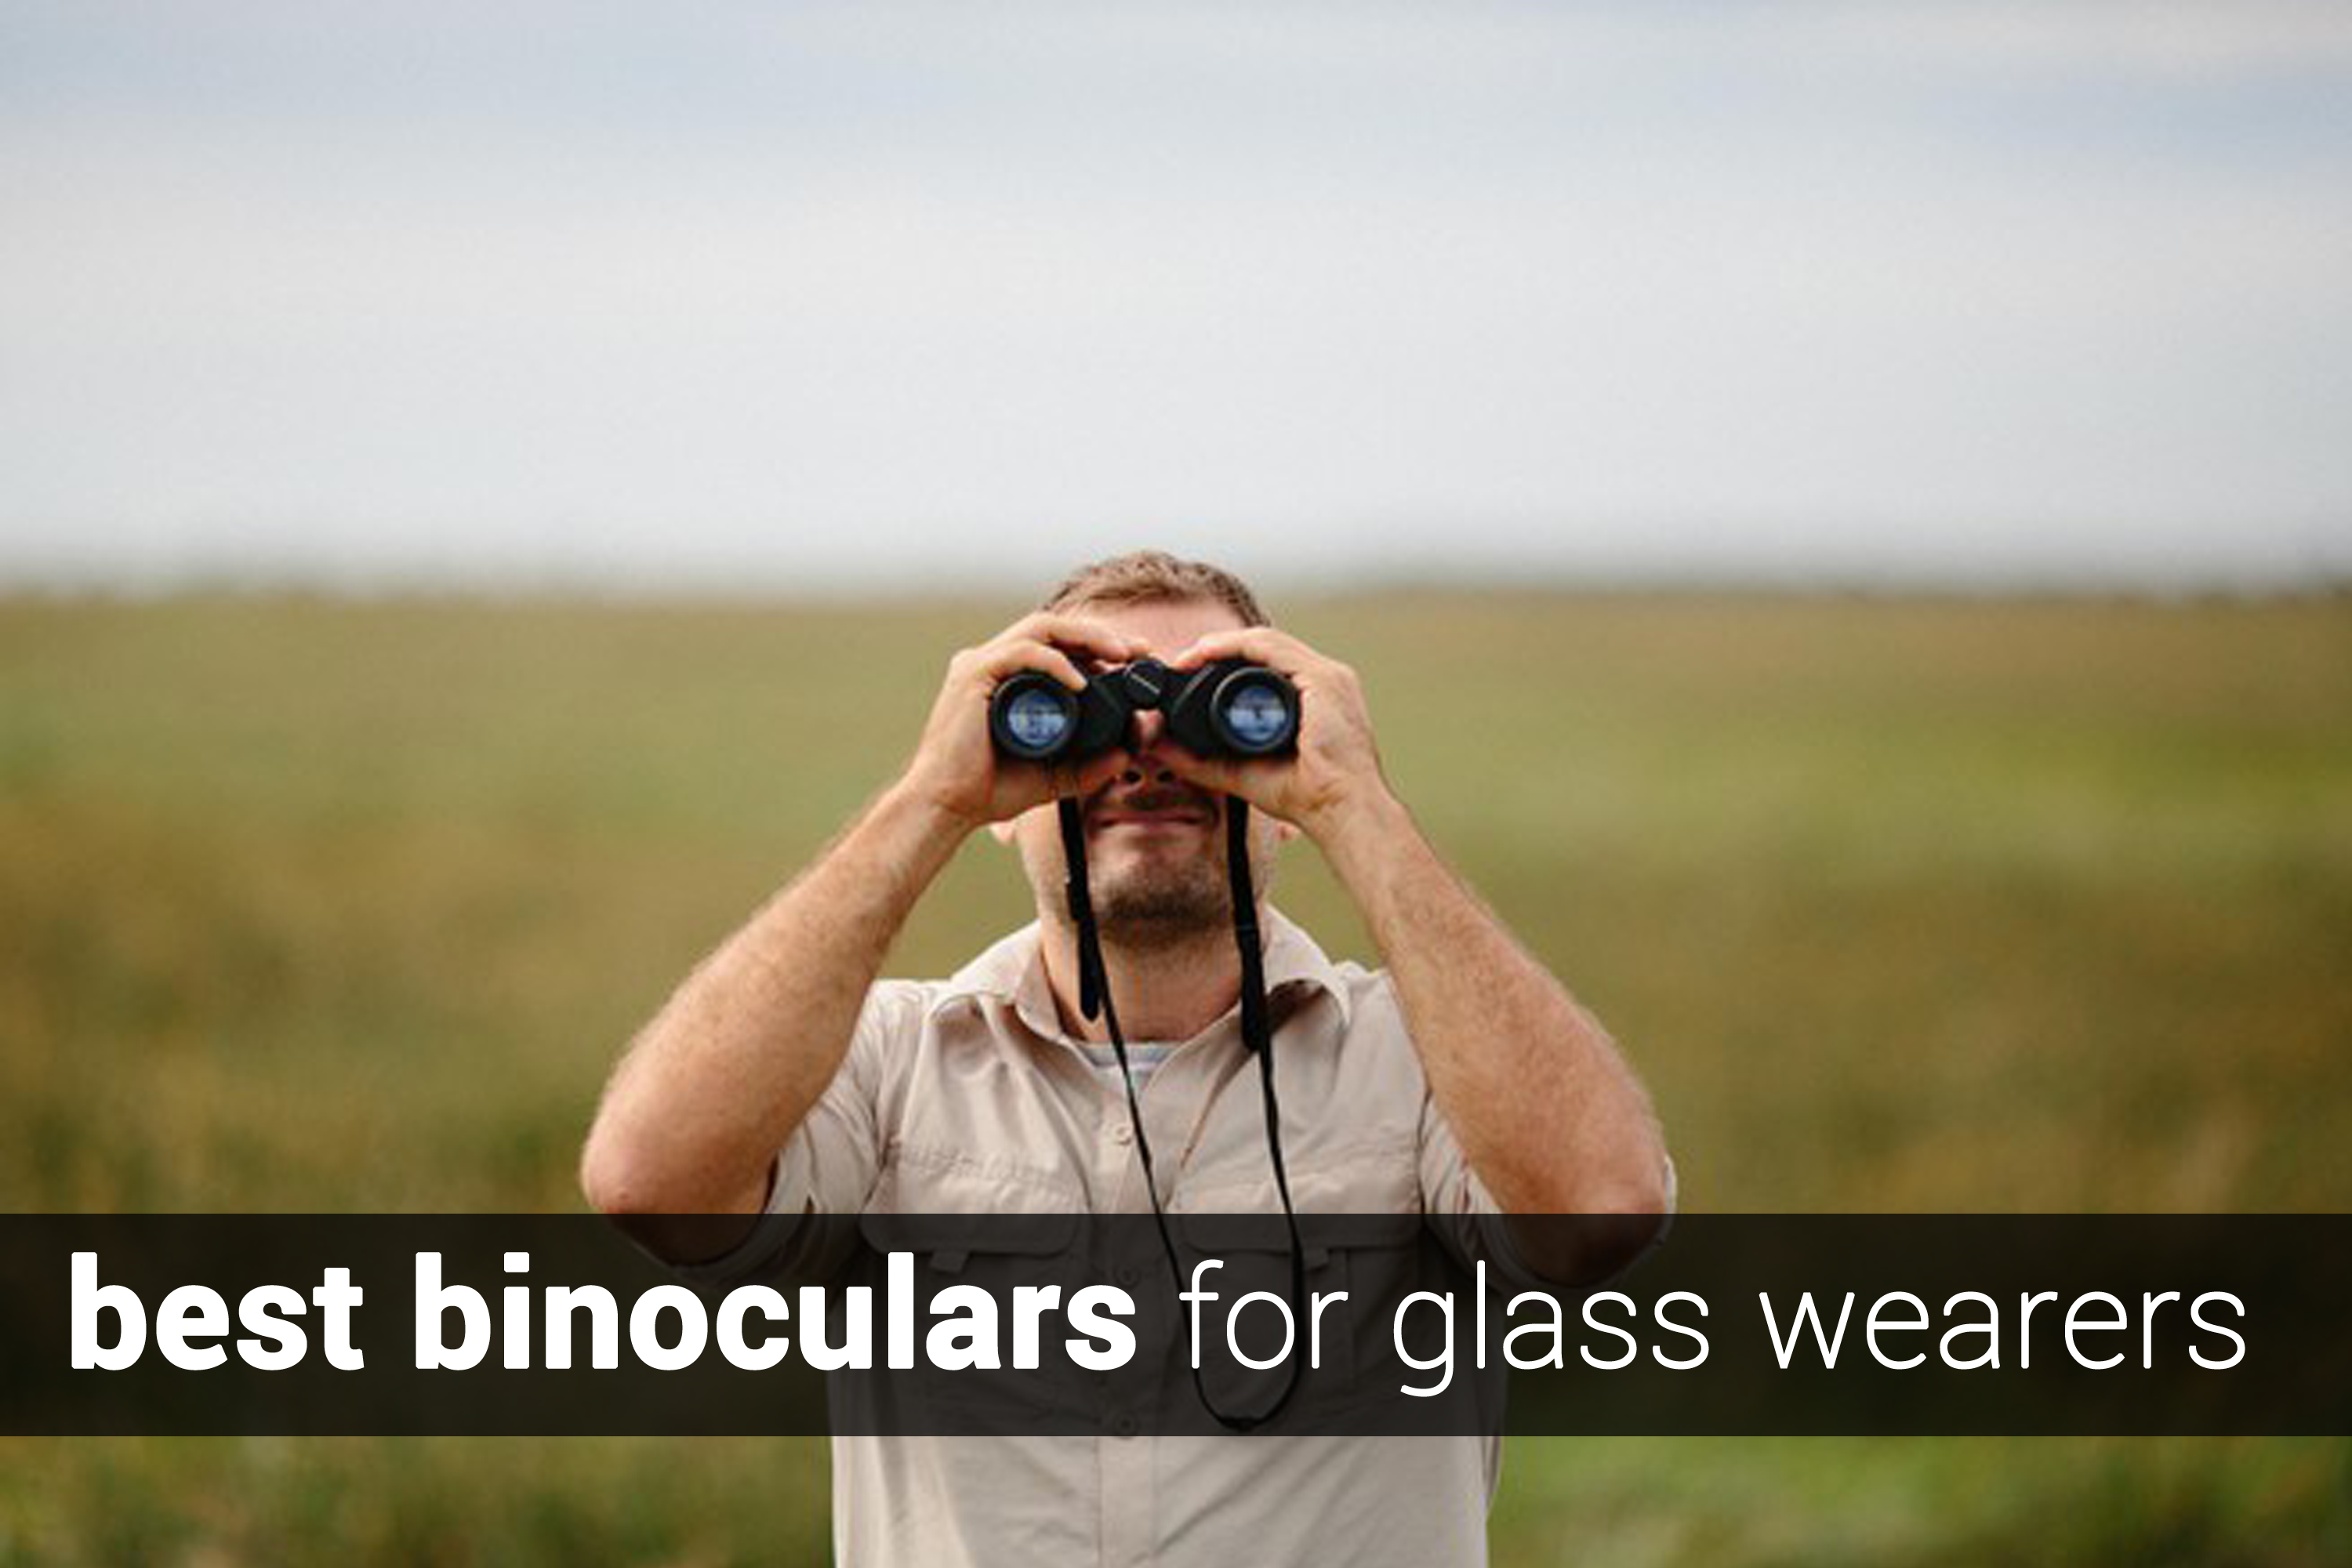 best binoculars for glass wearers